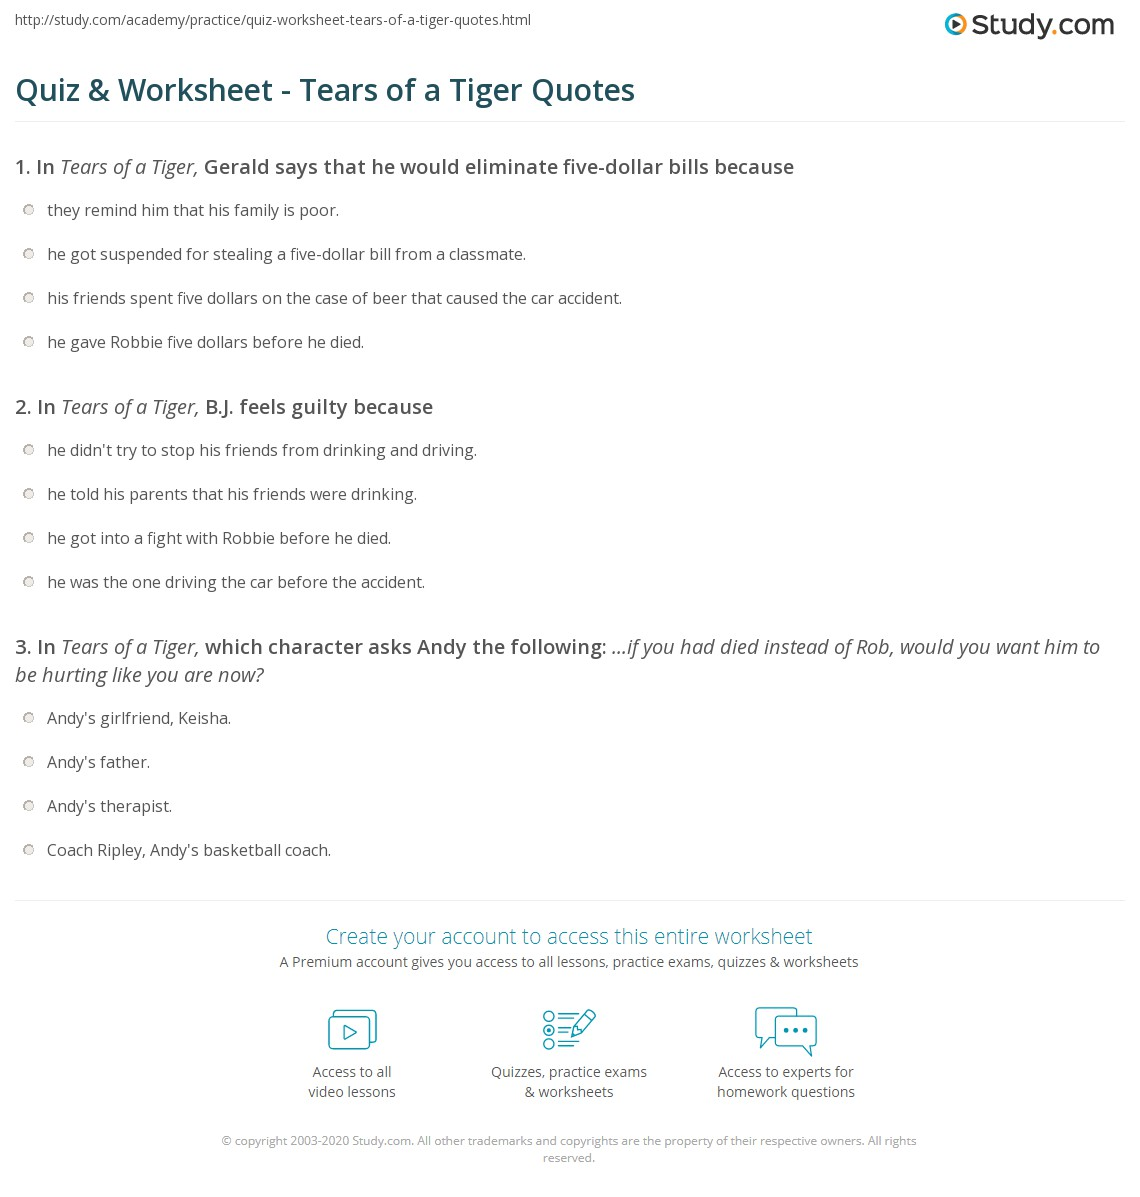 tears of a tiger worksheets delibertad quiz worksheet tears of a tiger quotes study com